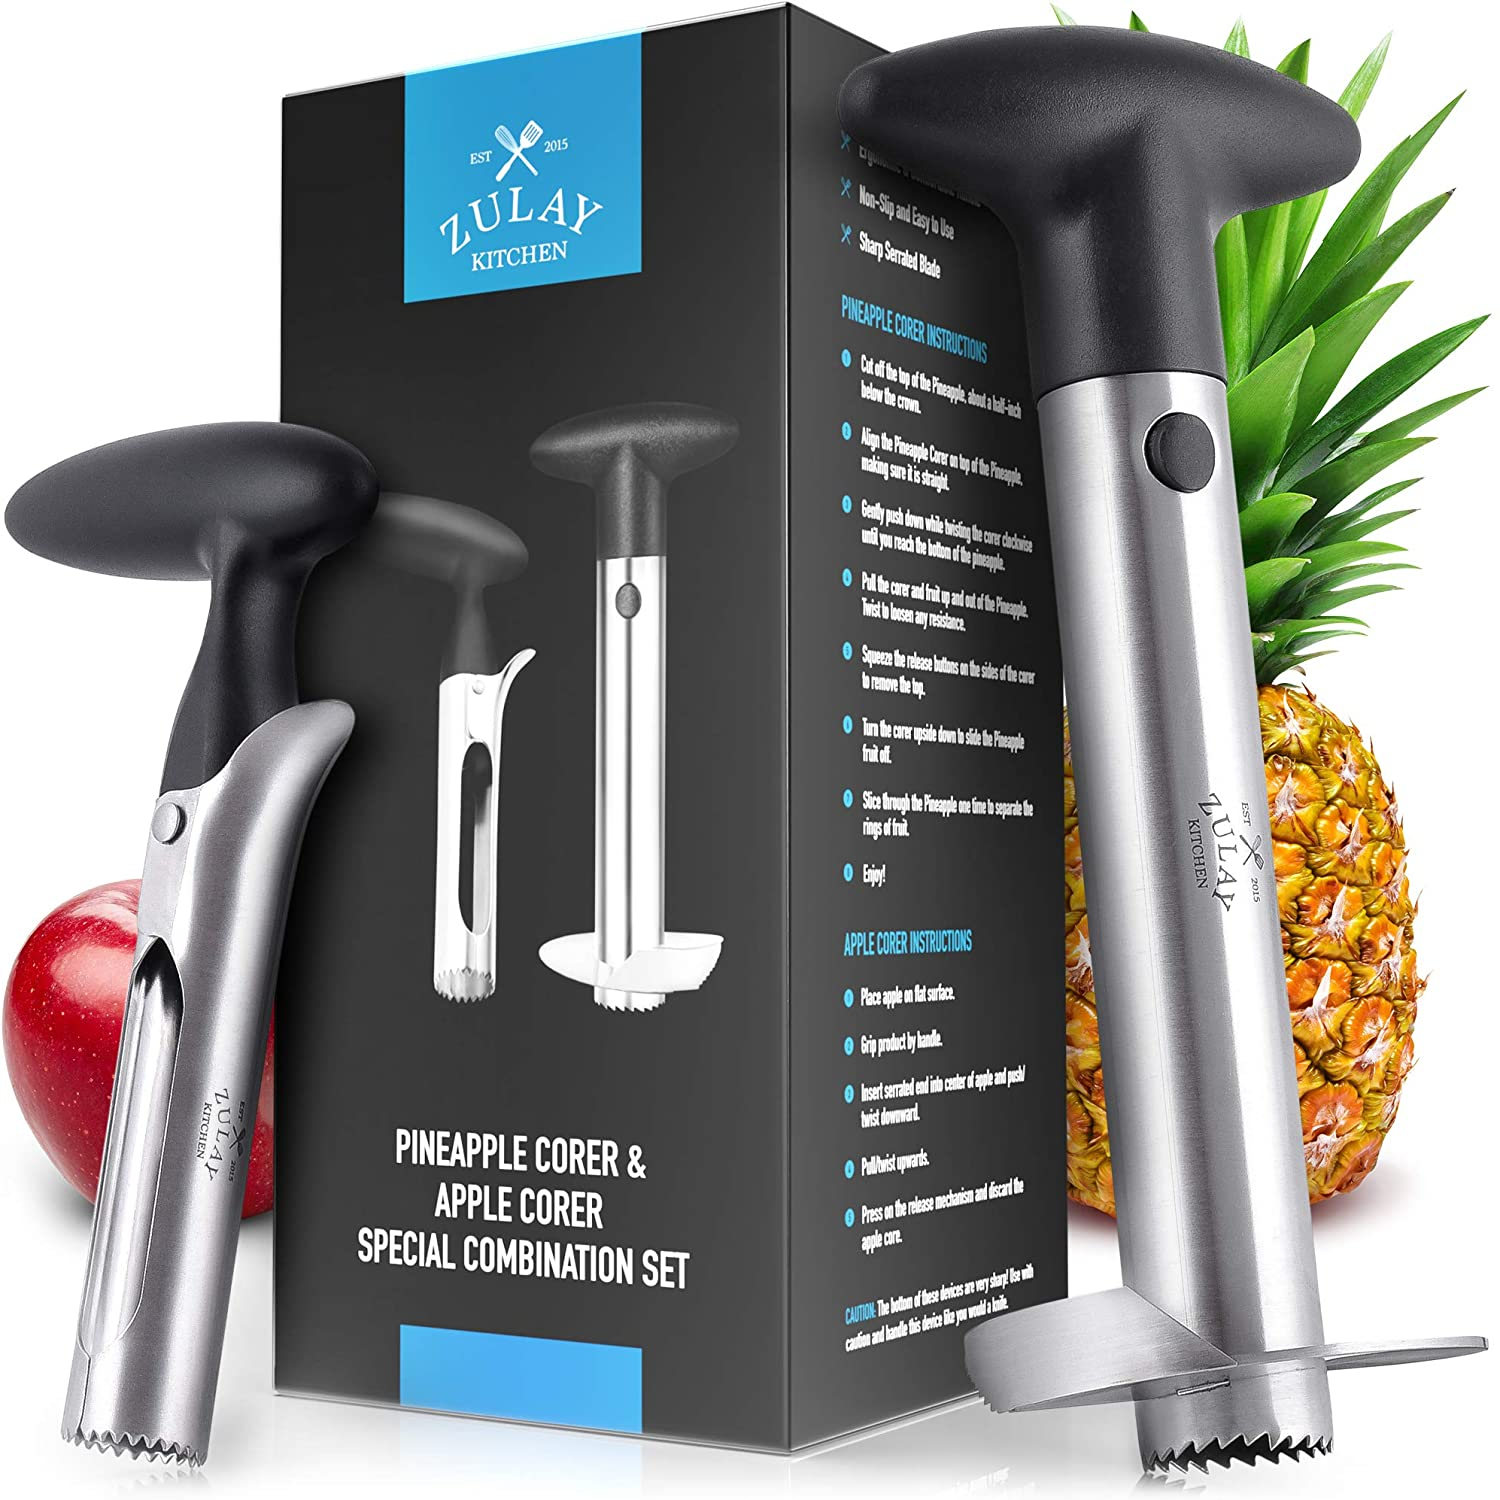 Zulay Kitchen Pineapple and Apple Corer Combo - Stainless Steel Pineapple Corer And Slicer Tool - Ergonomic Apple Corer Tool and Pineapple Cutter For Easy Core Removal